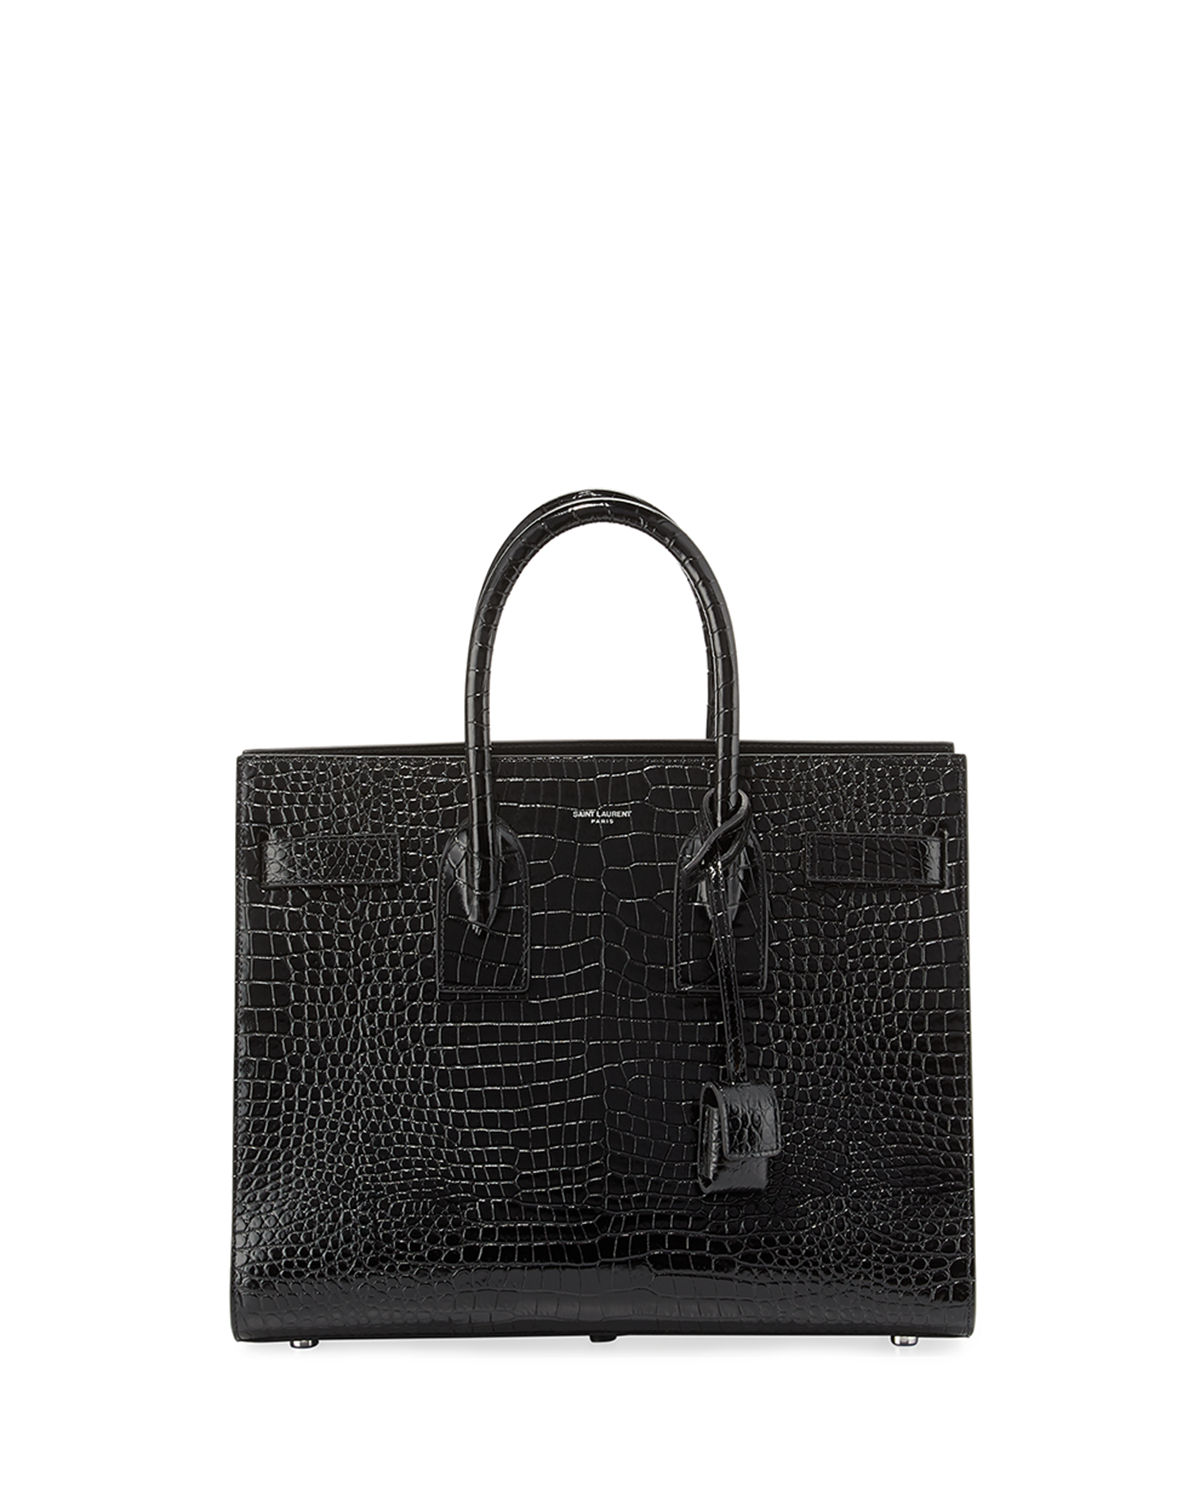 7a4b861d79 Saint LaurentSac de Jour Small Crocodile-Embossed Satchel Bag - Silver  Hardware